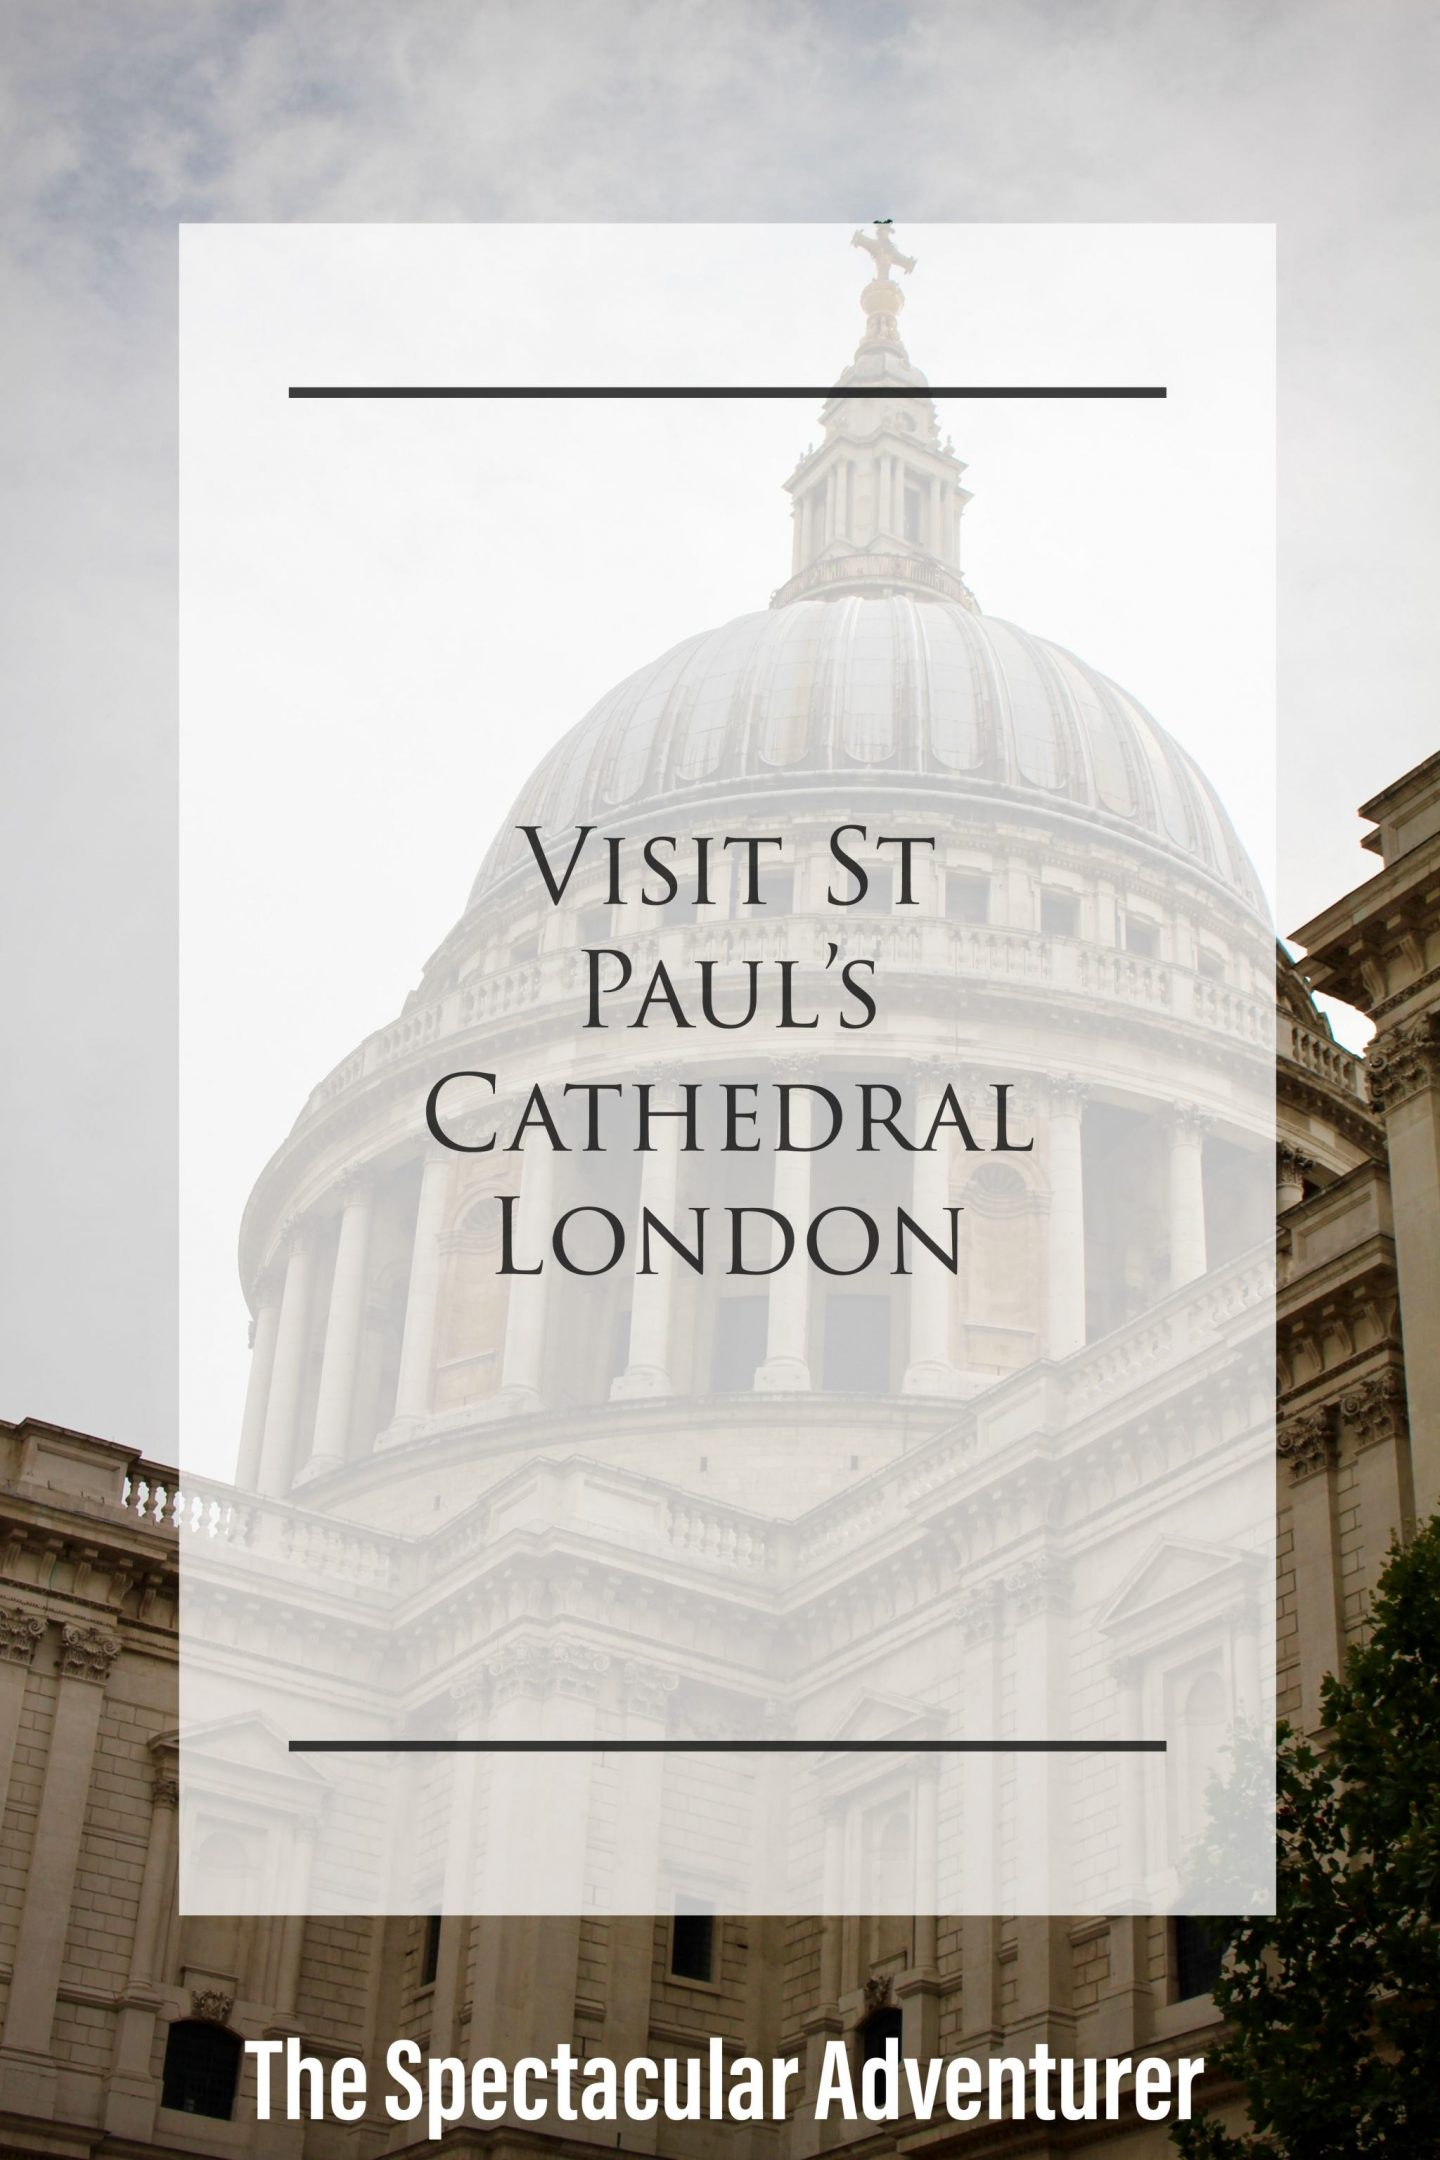 Visit St. Paul's Cathedral | The Spectacular Adventurer